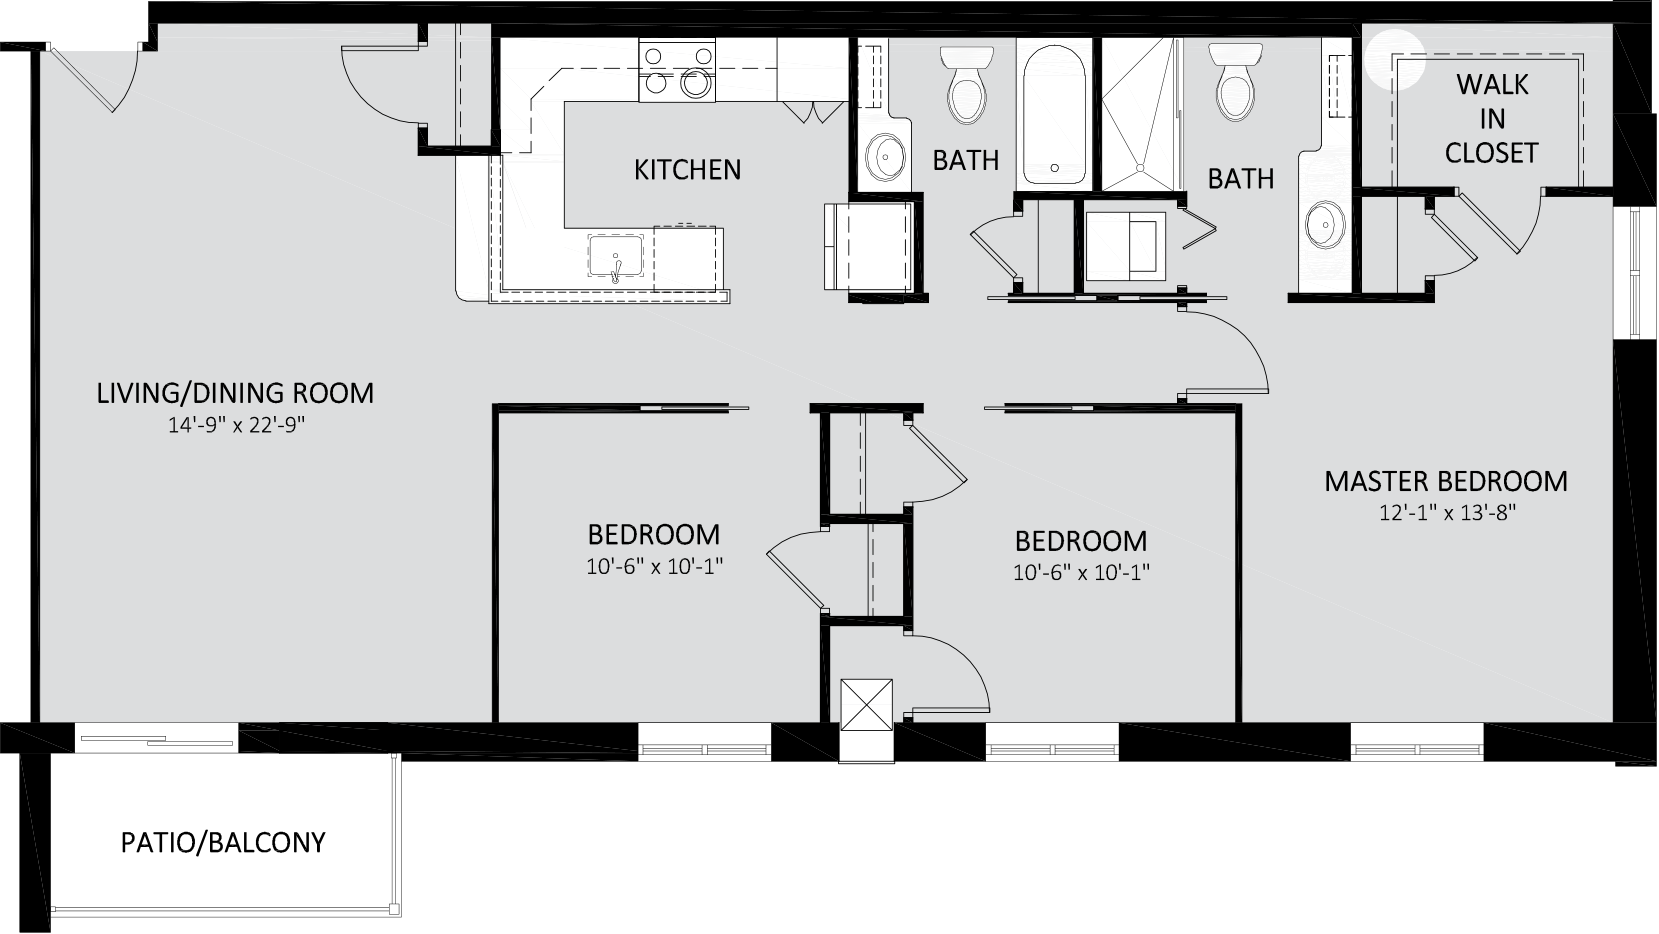 NFE Spirit Traditional Three Bedroom 1148 Sq Ft.png